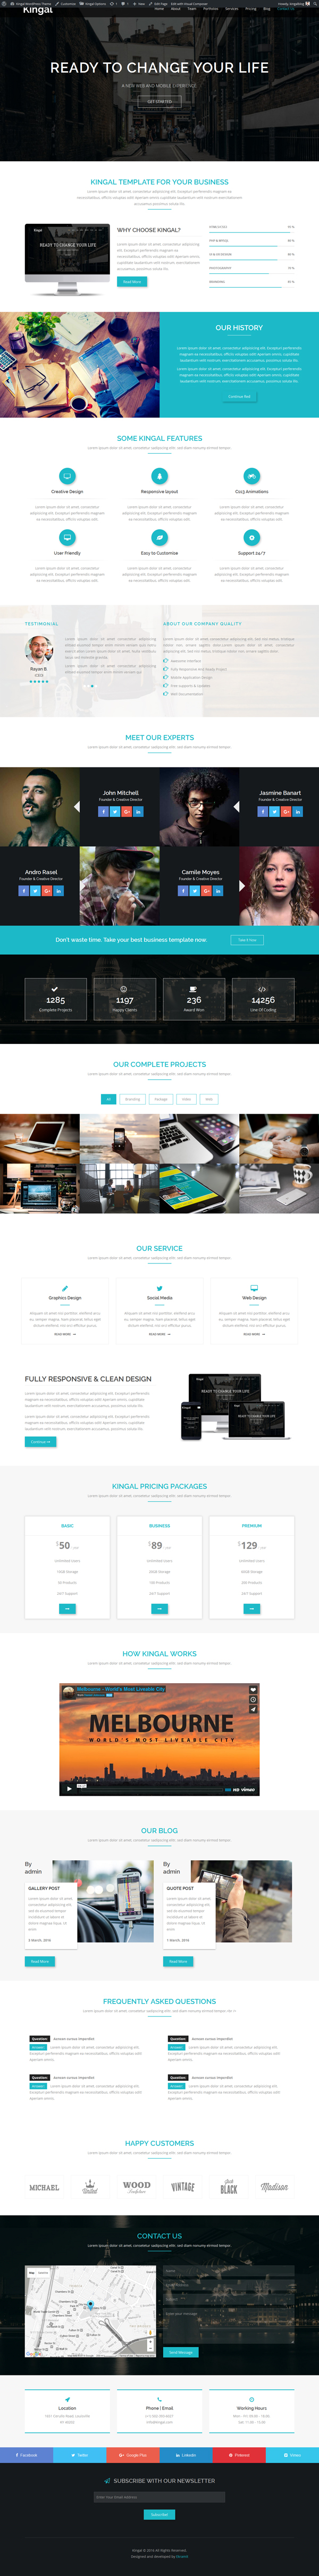 Kingal - MultiPurpose WordPress Theme